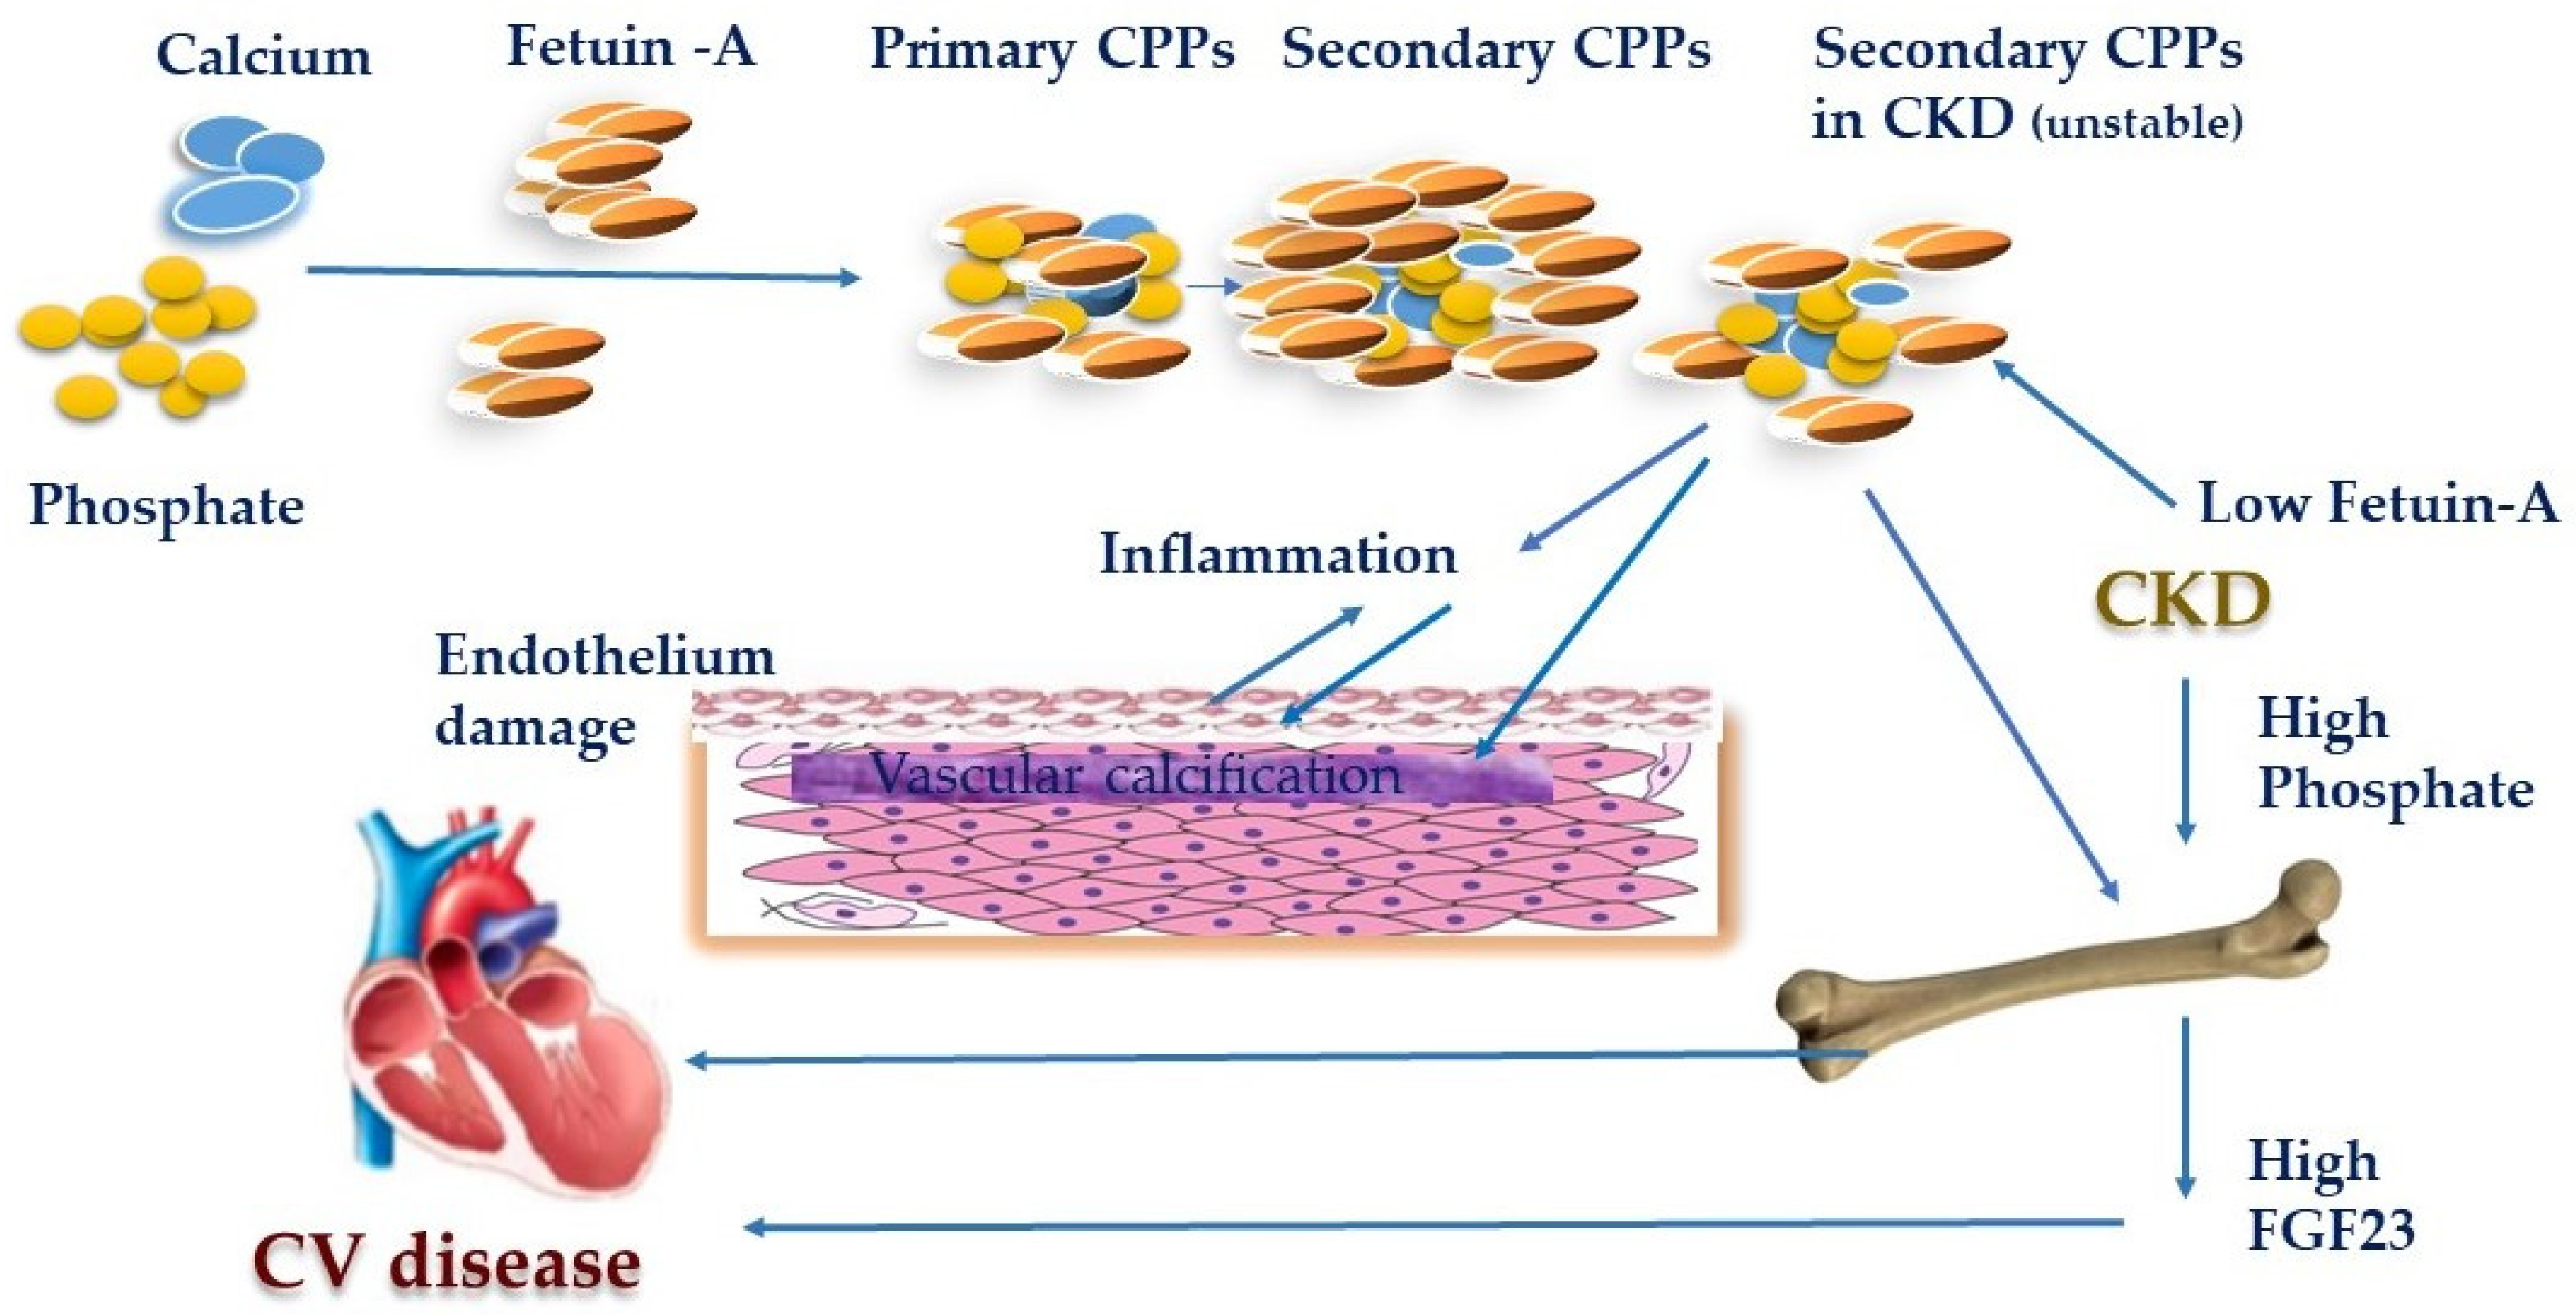 Toxins Free Full Text Should We Consider The Cardiovascular System While Evaluating Ckd Mbd Html